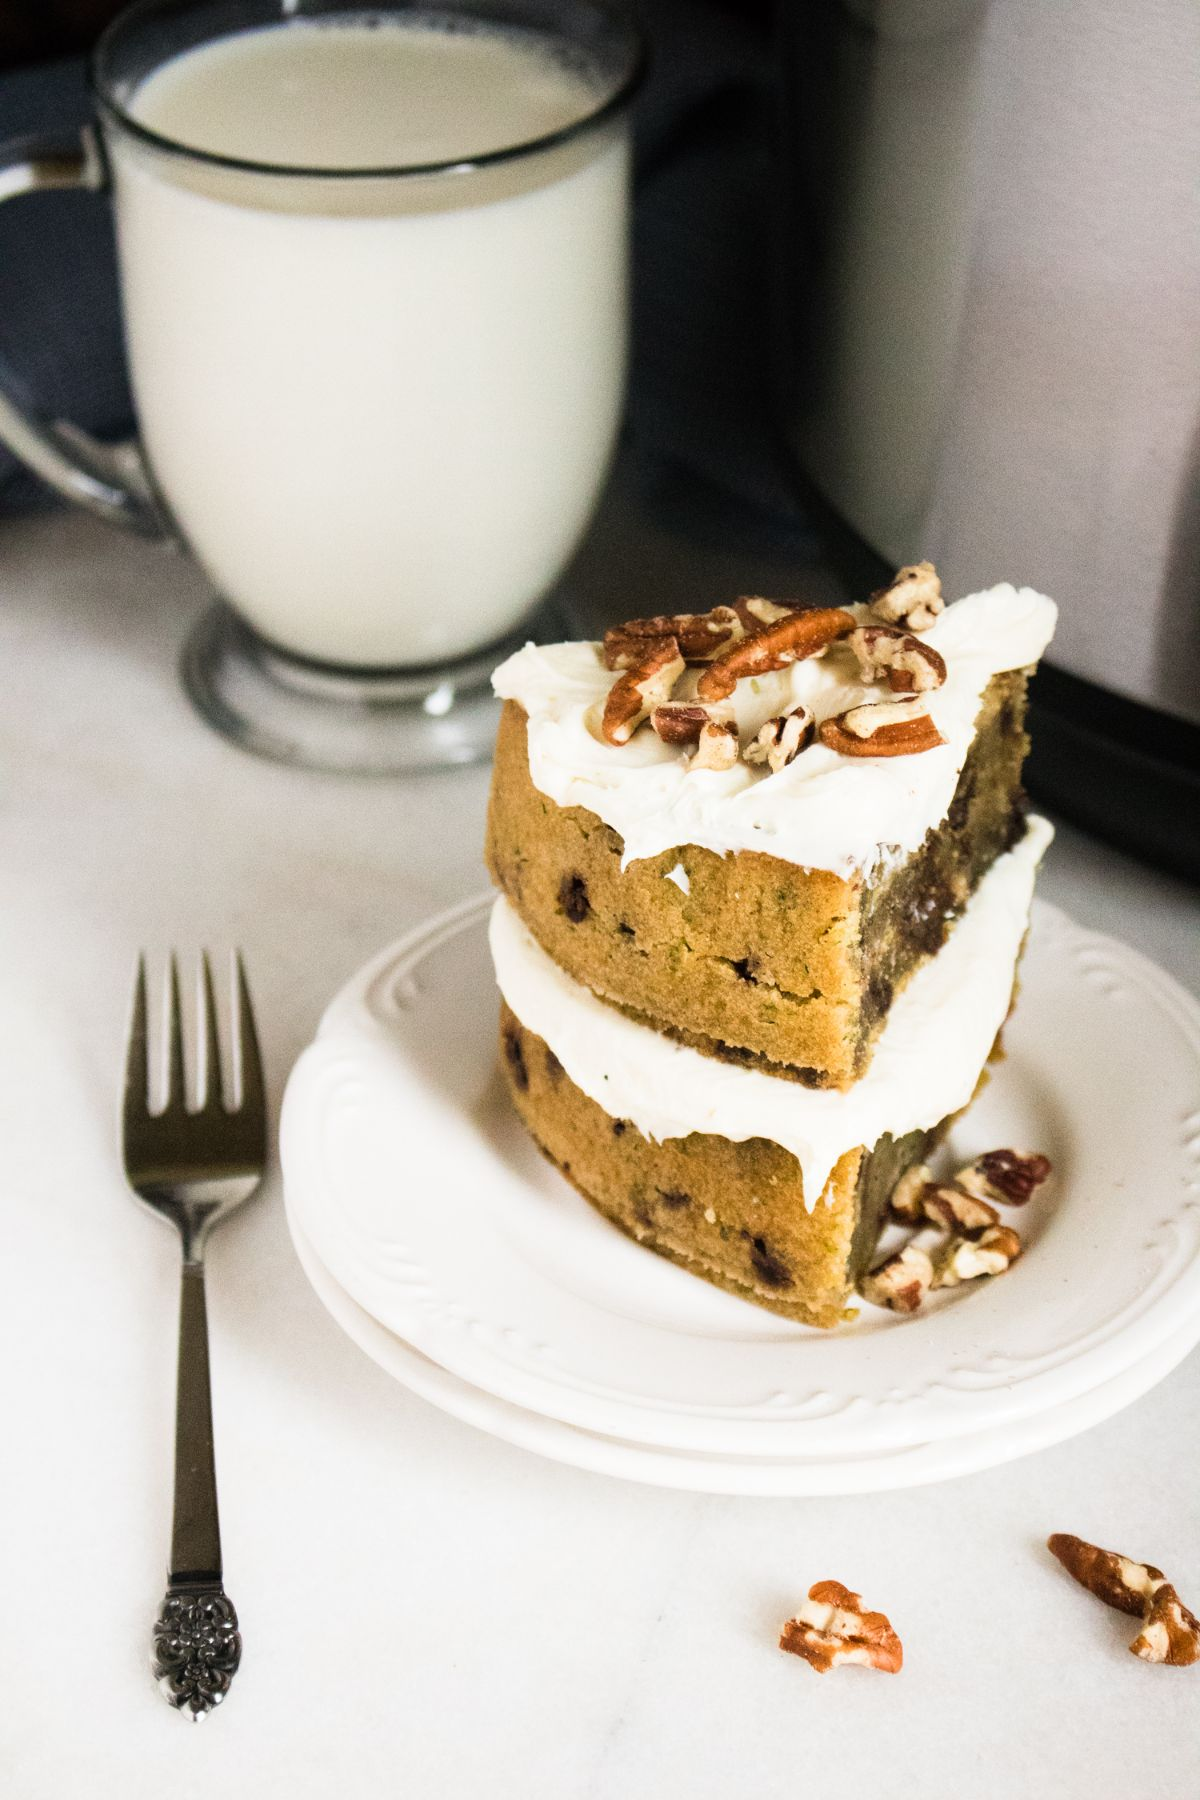 A slice of the Zucchini bread on a serving plate with a glass of milk in the background and a fork beside it.